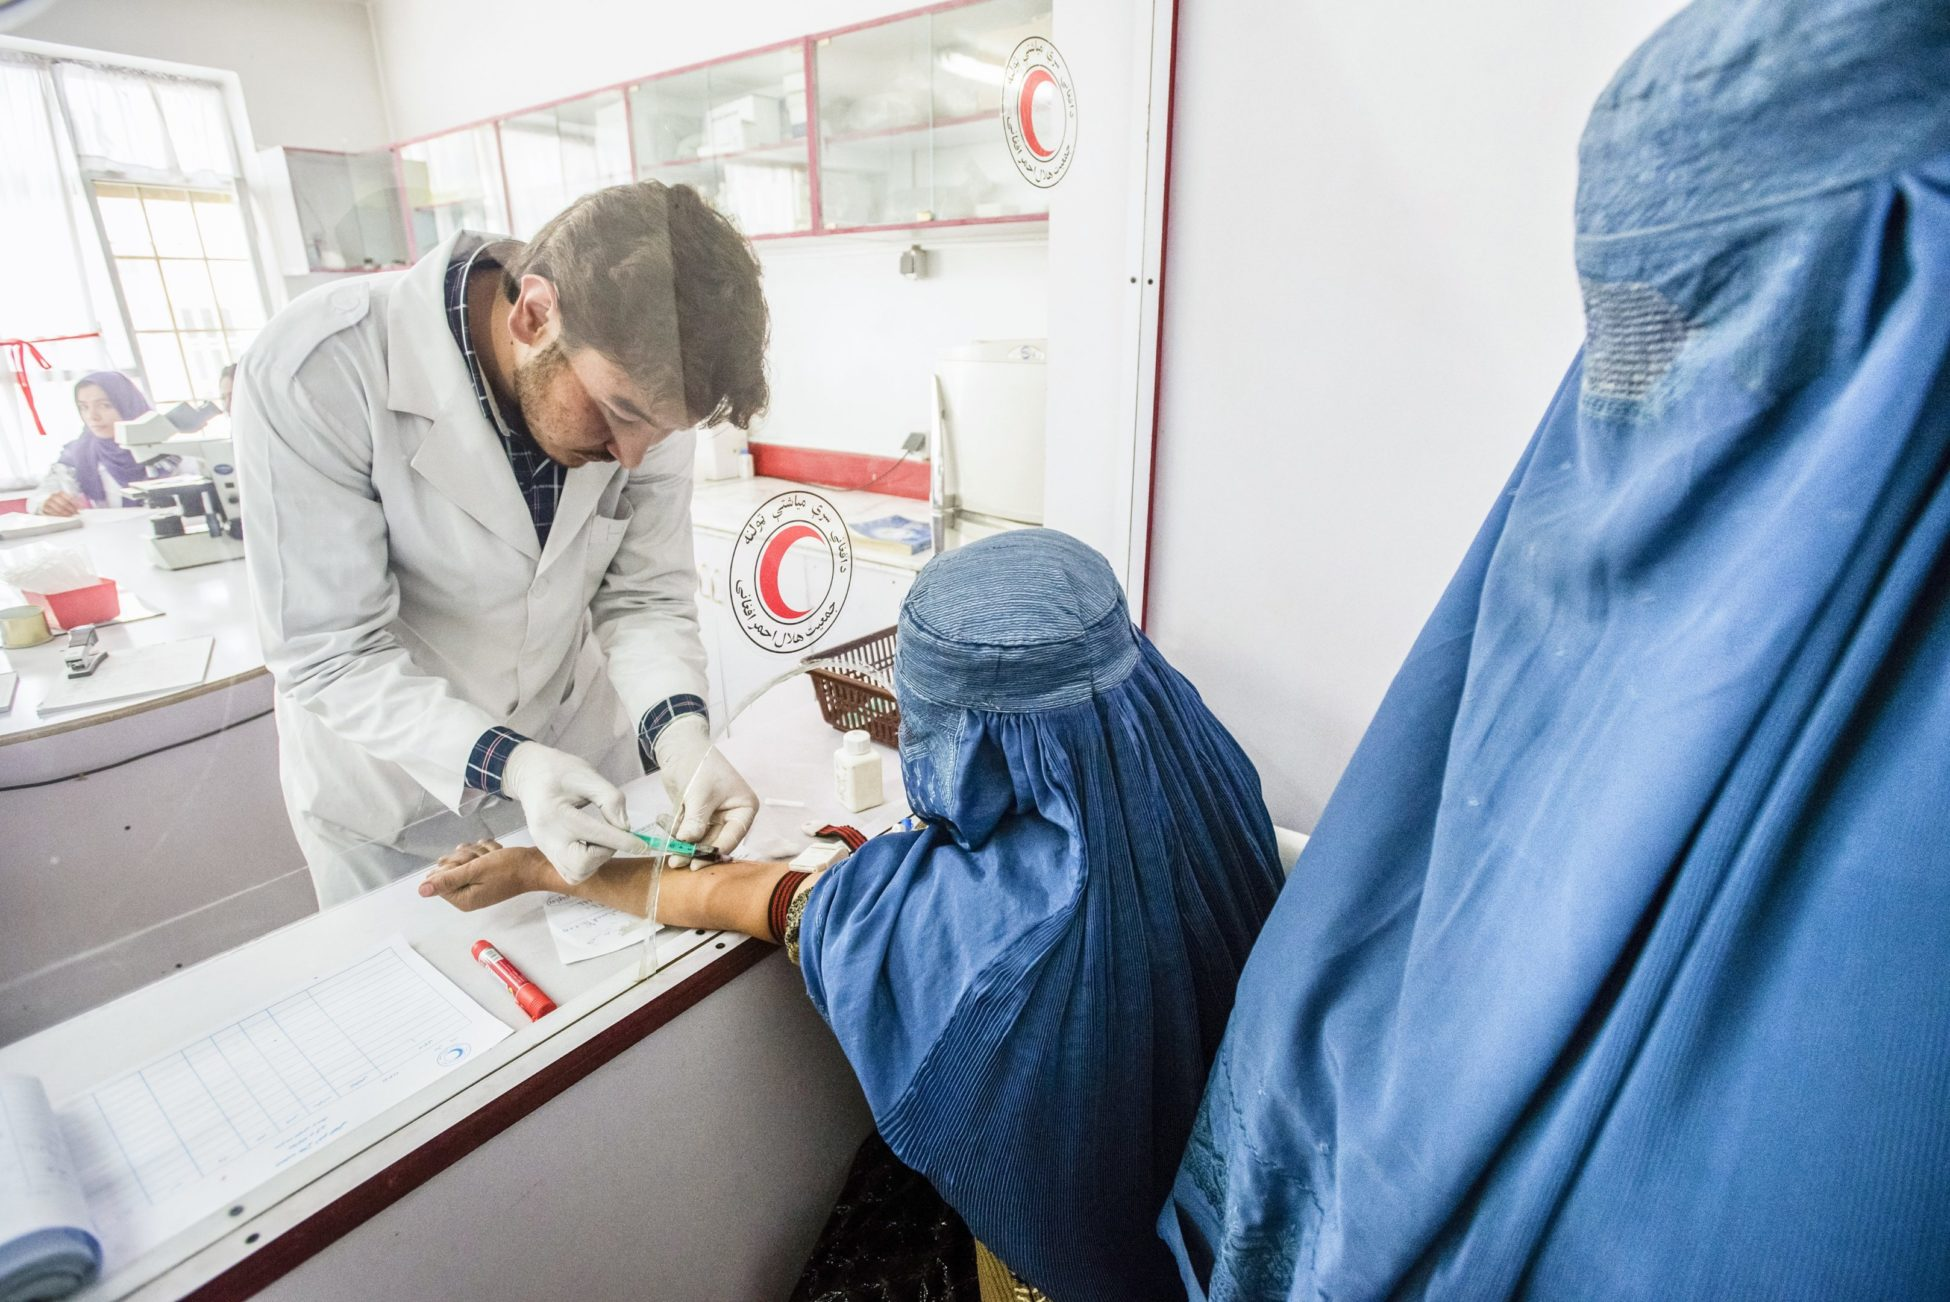 Laboratory staff Rohudin draws blood of woman wearing burka for blood test in laboratory of Central Hospital of Afghan Red Crescent Society, Kabul, Afghanistan